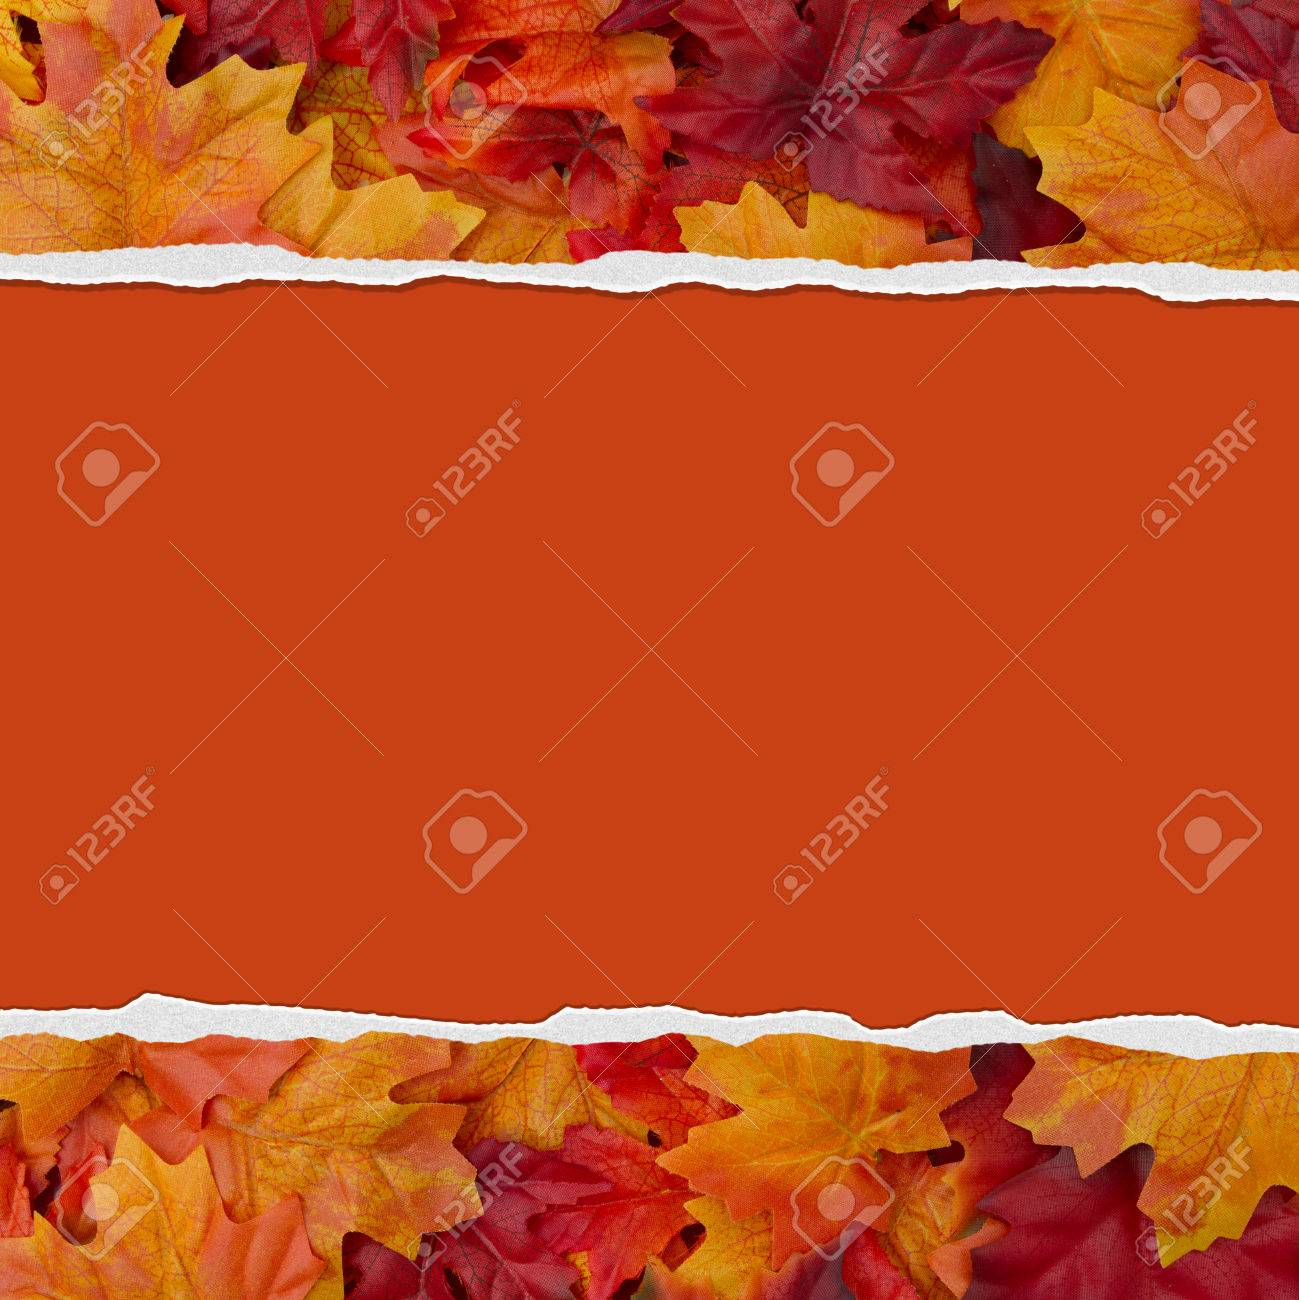 autumn leaves torn background for your message or invitation stock